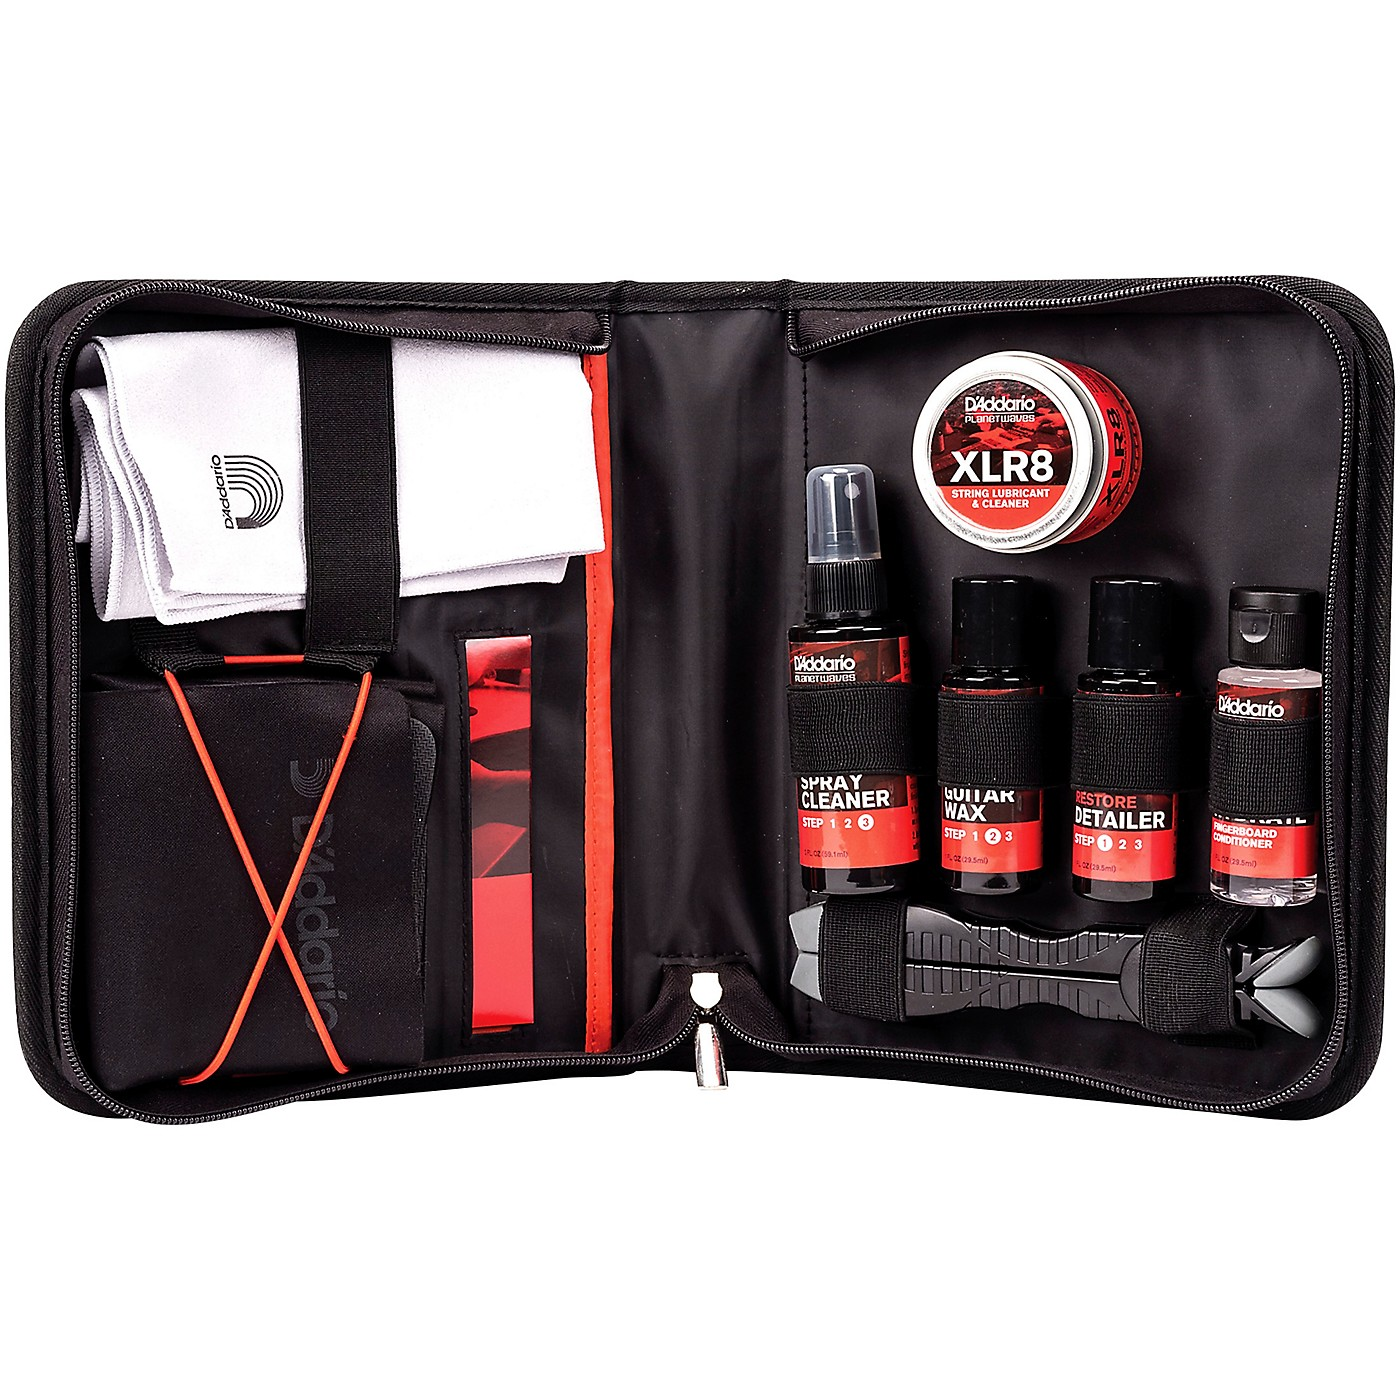 D'Addario Planet Waves Guitar Care and Cleaning Kit thumbnail